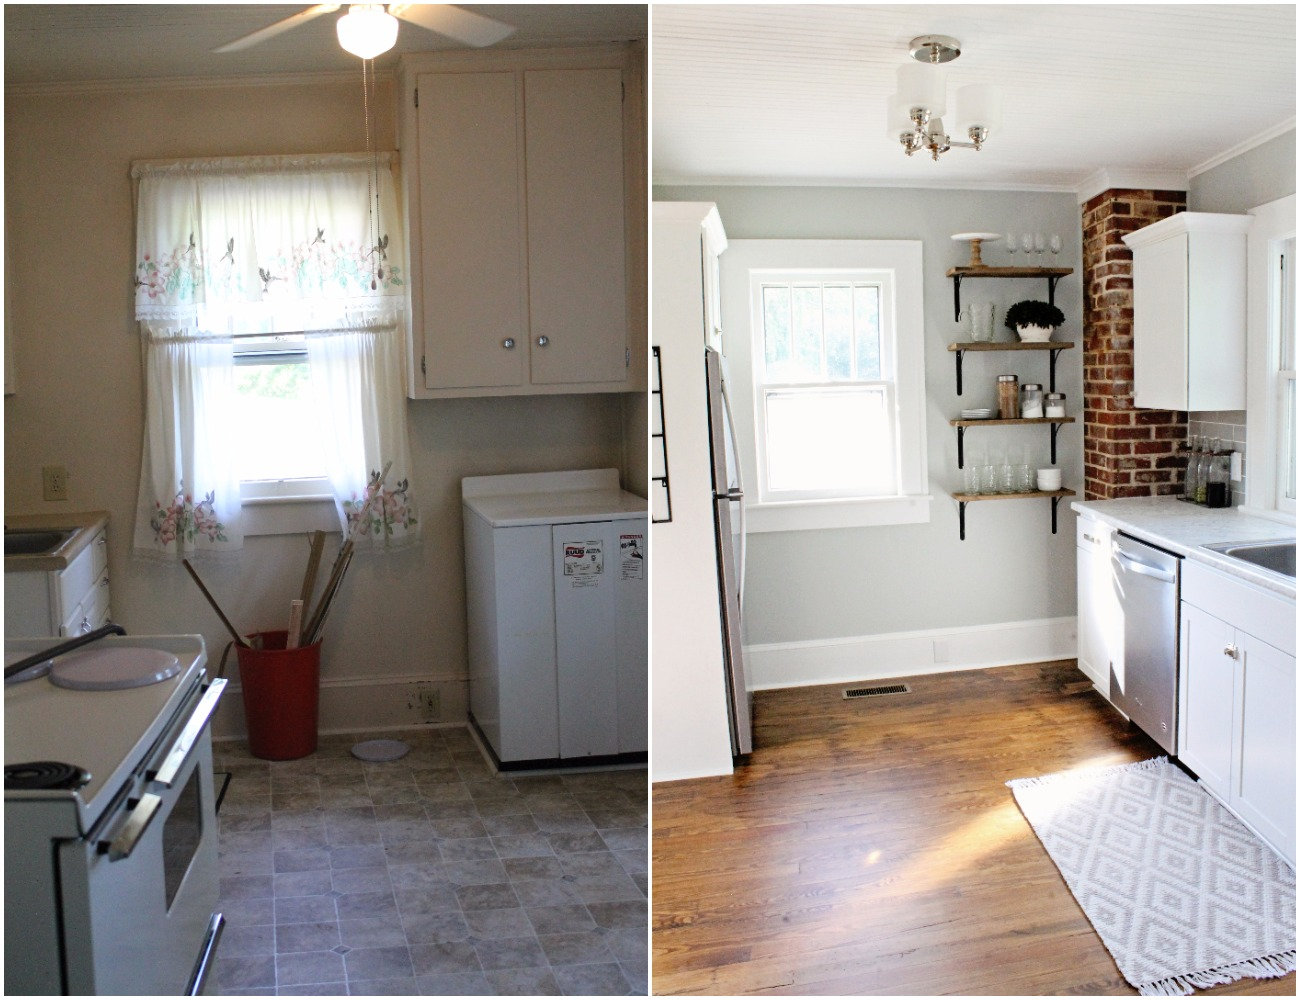 House Flipping Before and Afters - Budget Kitchen Renovation, Cheap Cabinets, Cheap Countertops - Sherwin Williams Silver Strand 22